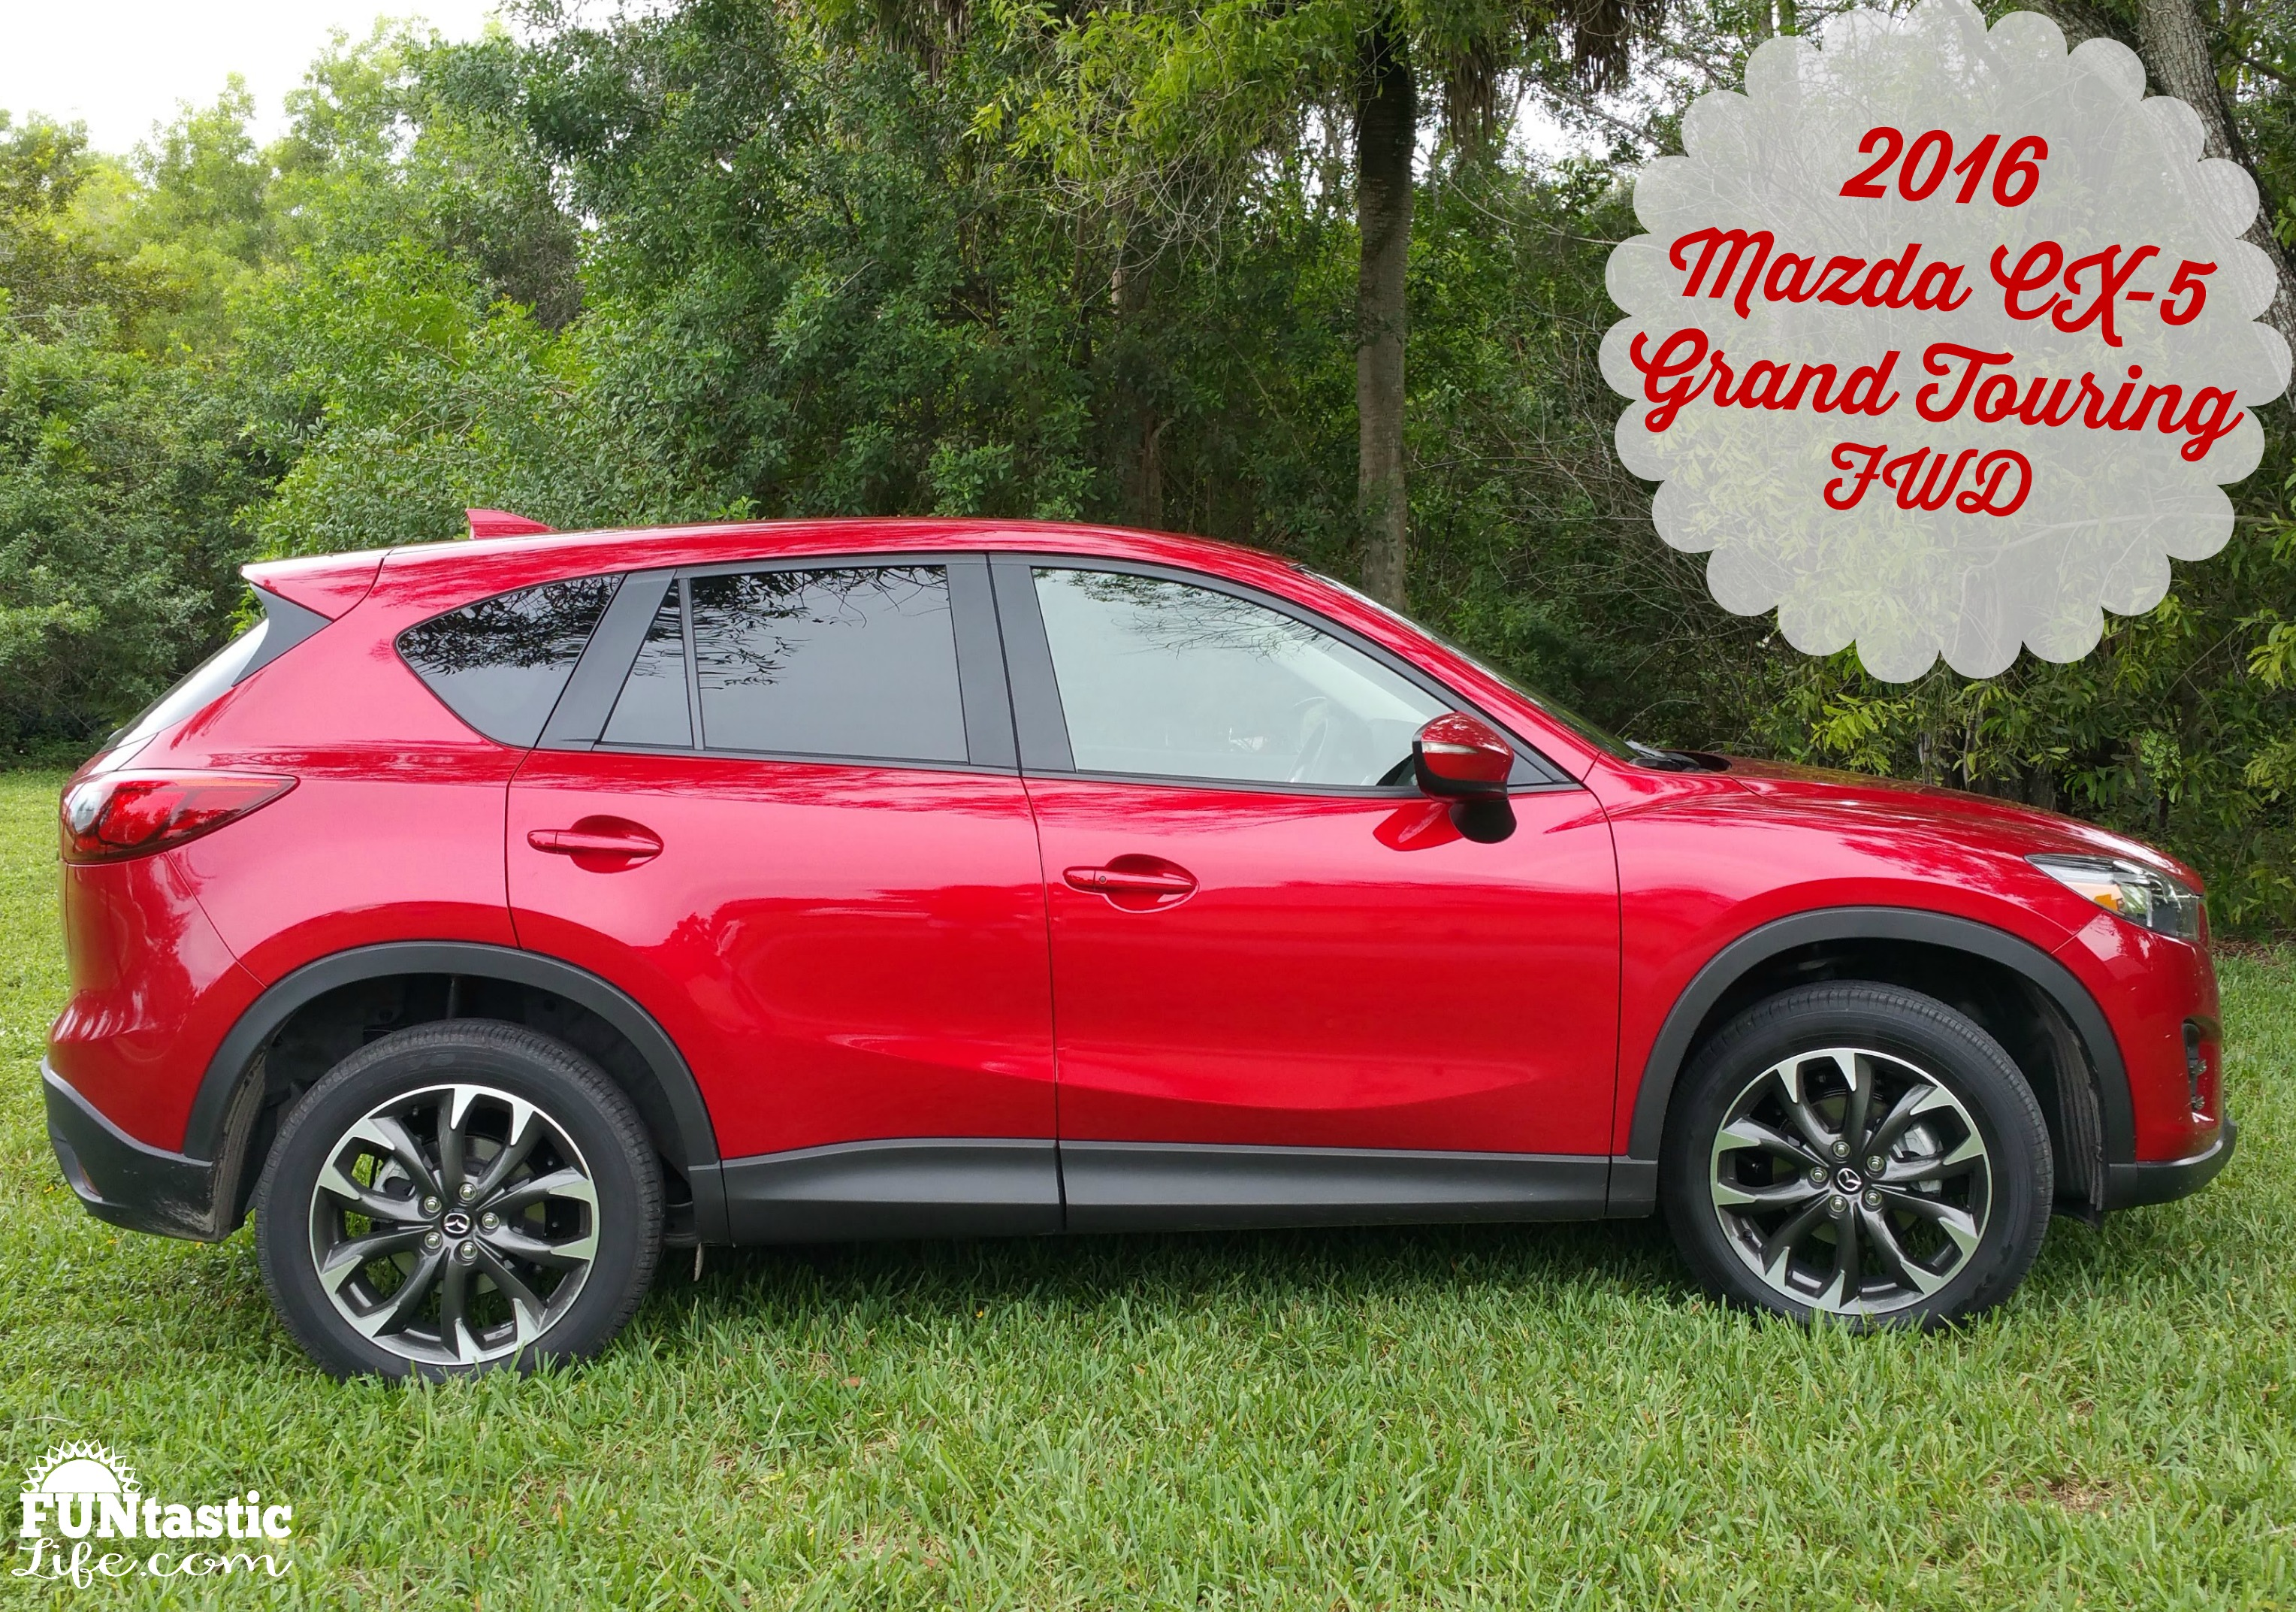 4 reasons we thought the 2016 mazda cx 5 grand touring fwd was pretty cool funtastic life. Black Bedroom Furniture Sets. Home Design Ideas